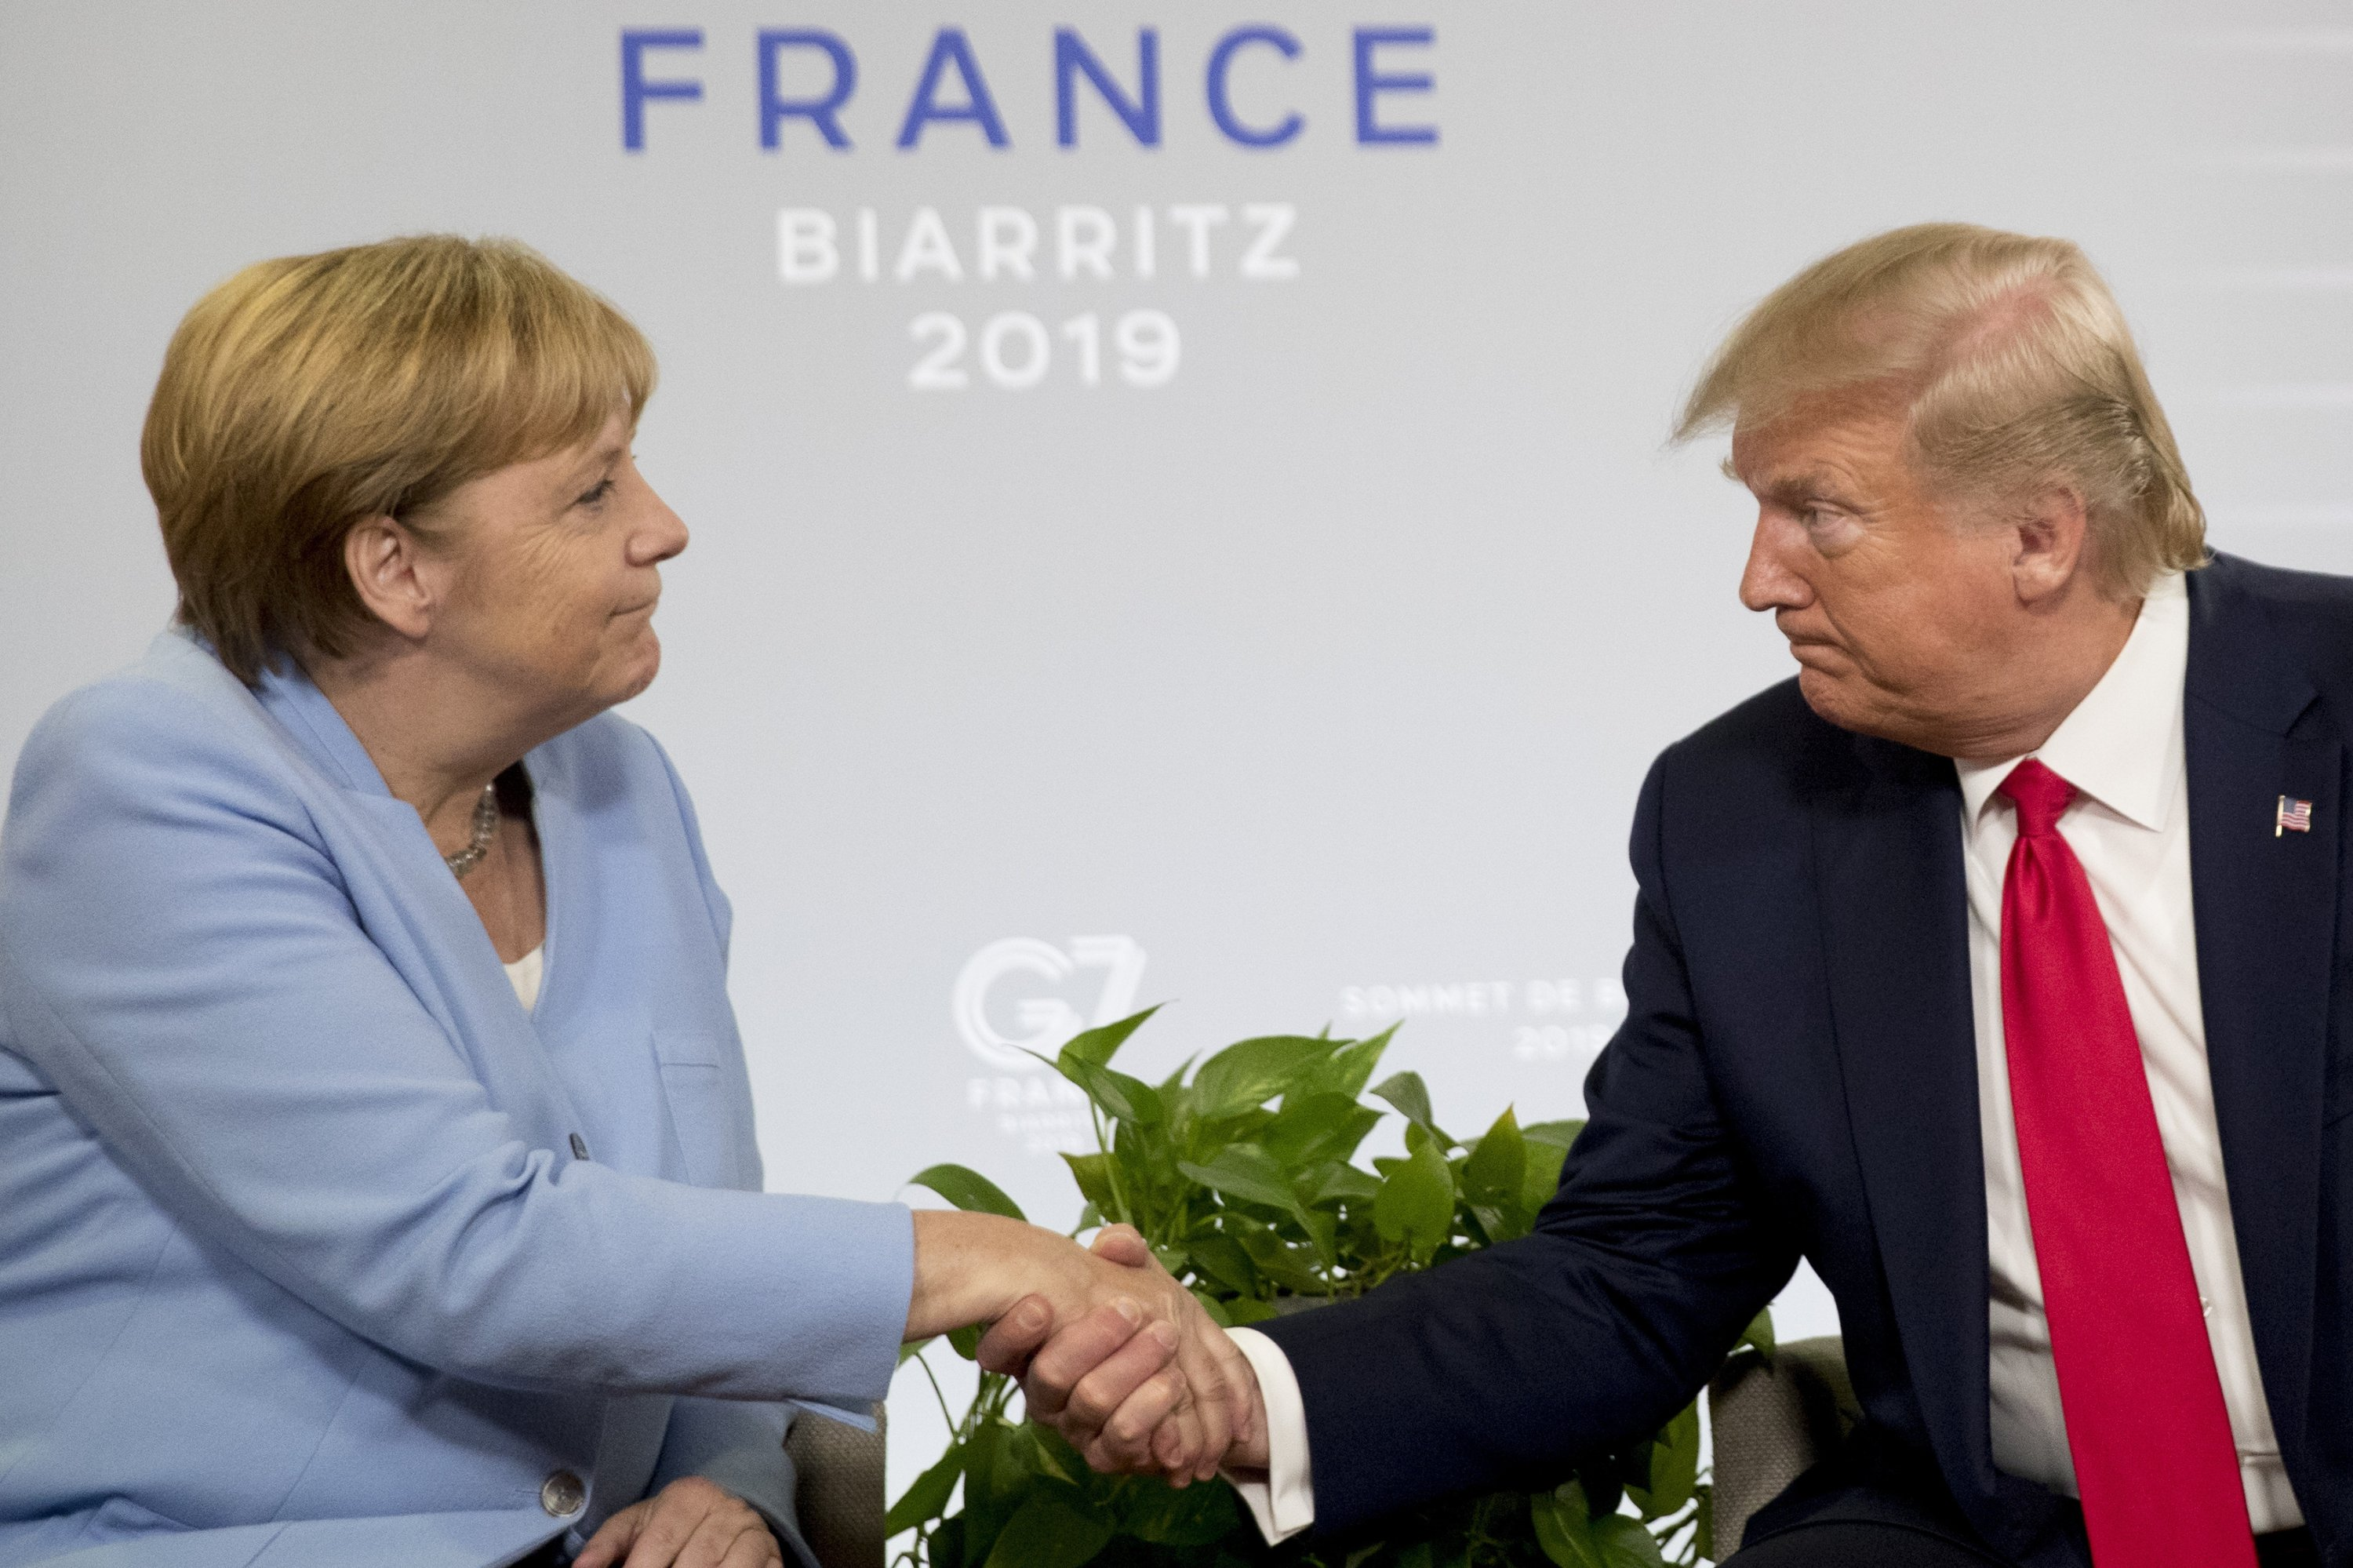 Then U.S. President Donald Trump (R) and German Chancellor Angela Merkel shake hands during a bilateral meeting at the G-7 summit in Biarritz, France, Aug. 26, 2019. (AP Photo)